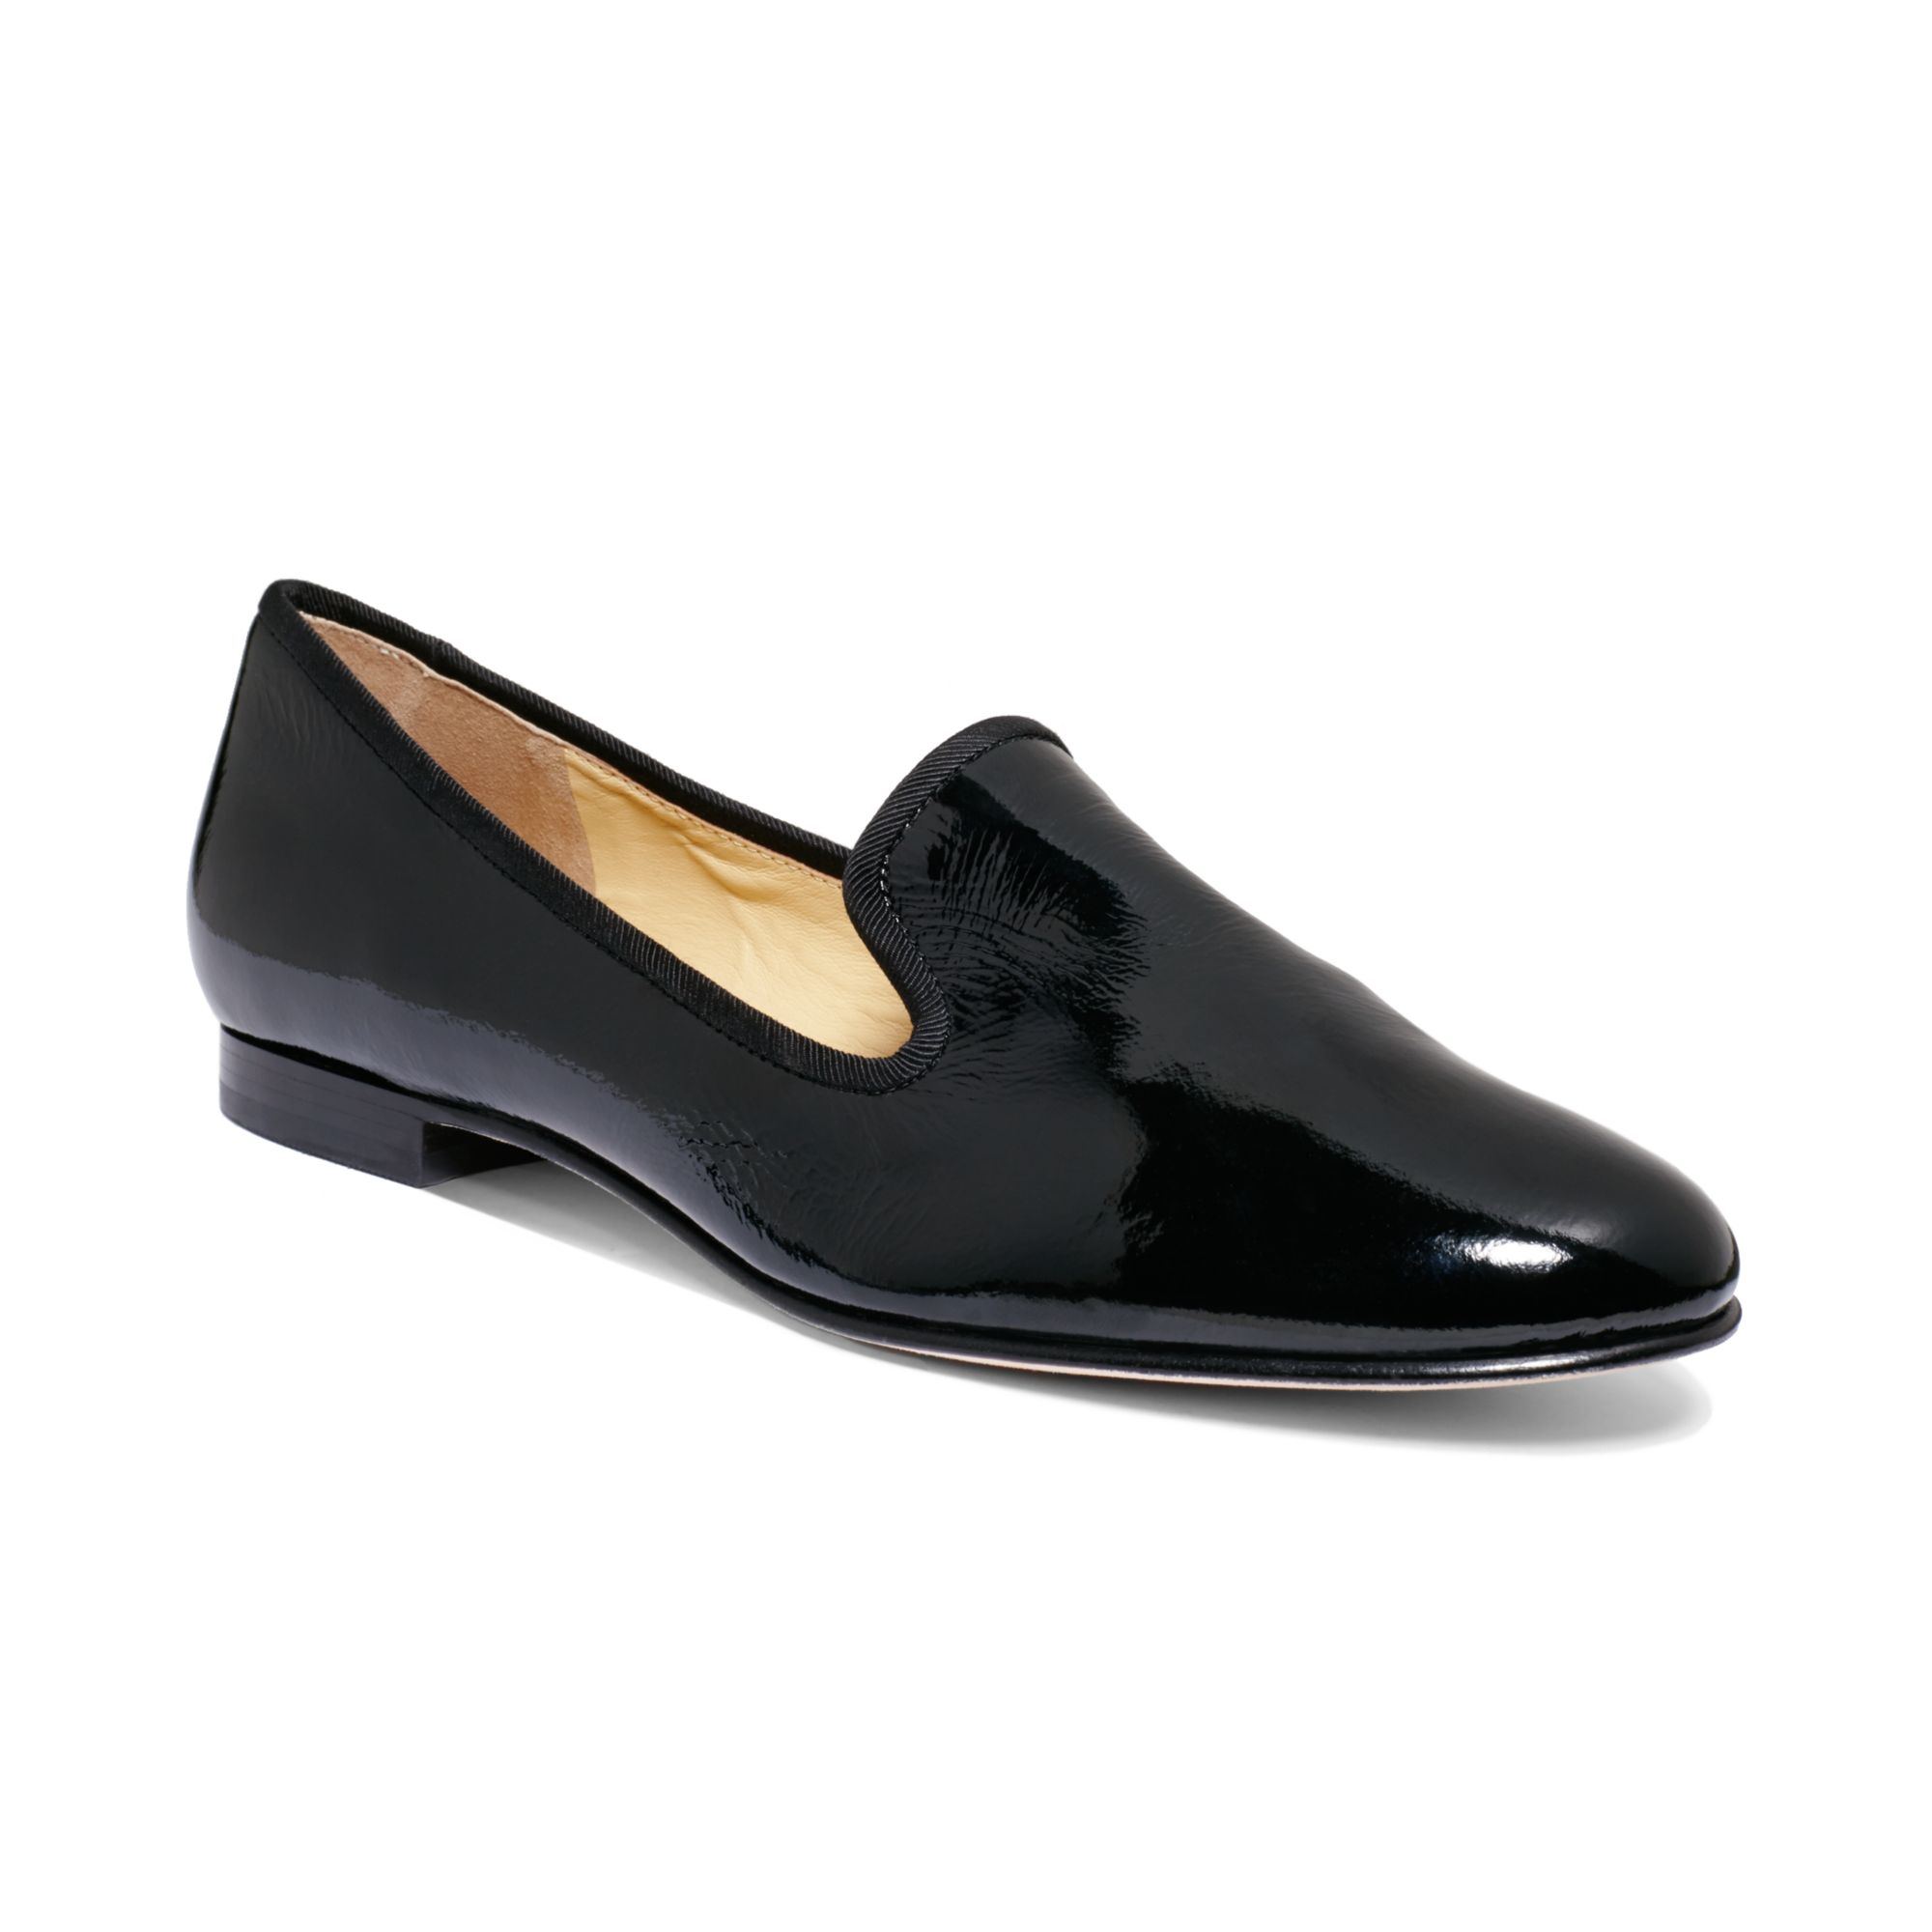 e78c5a02ea0 Lyst - Cole Haan Air Sabrina Loafers in Black